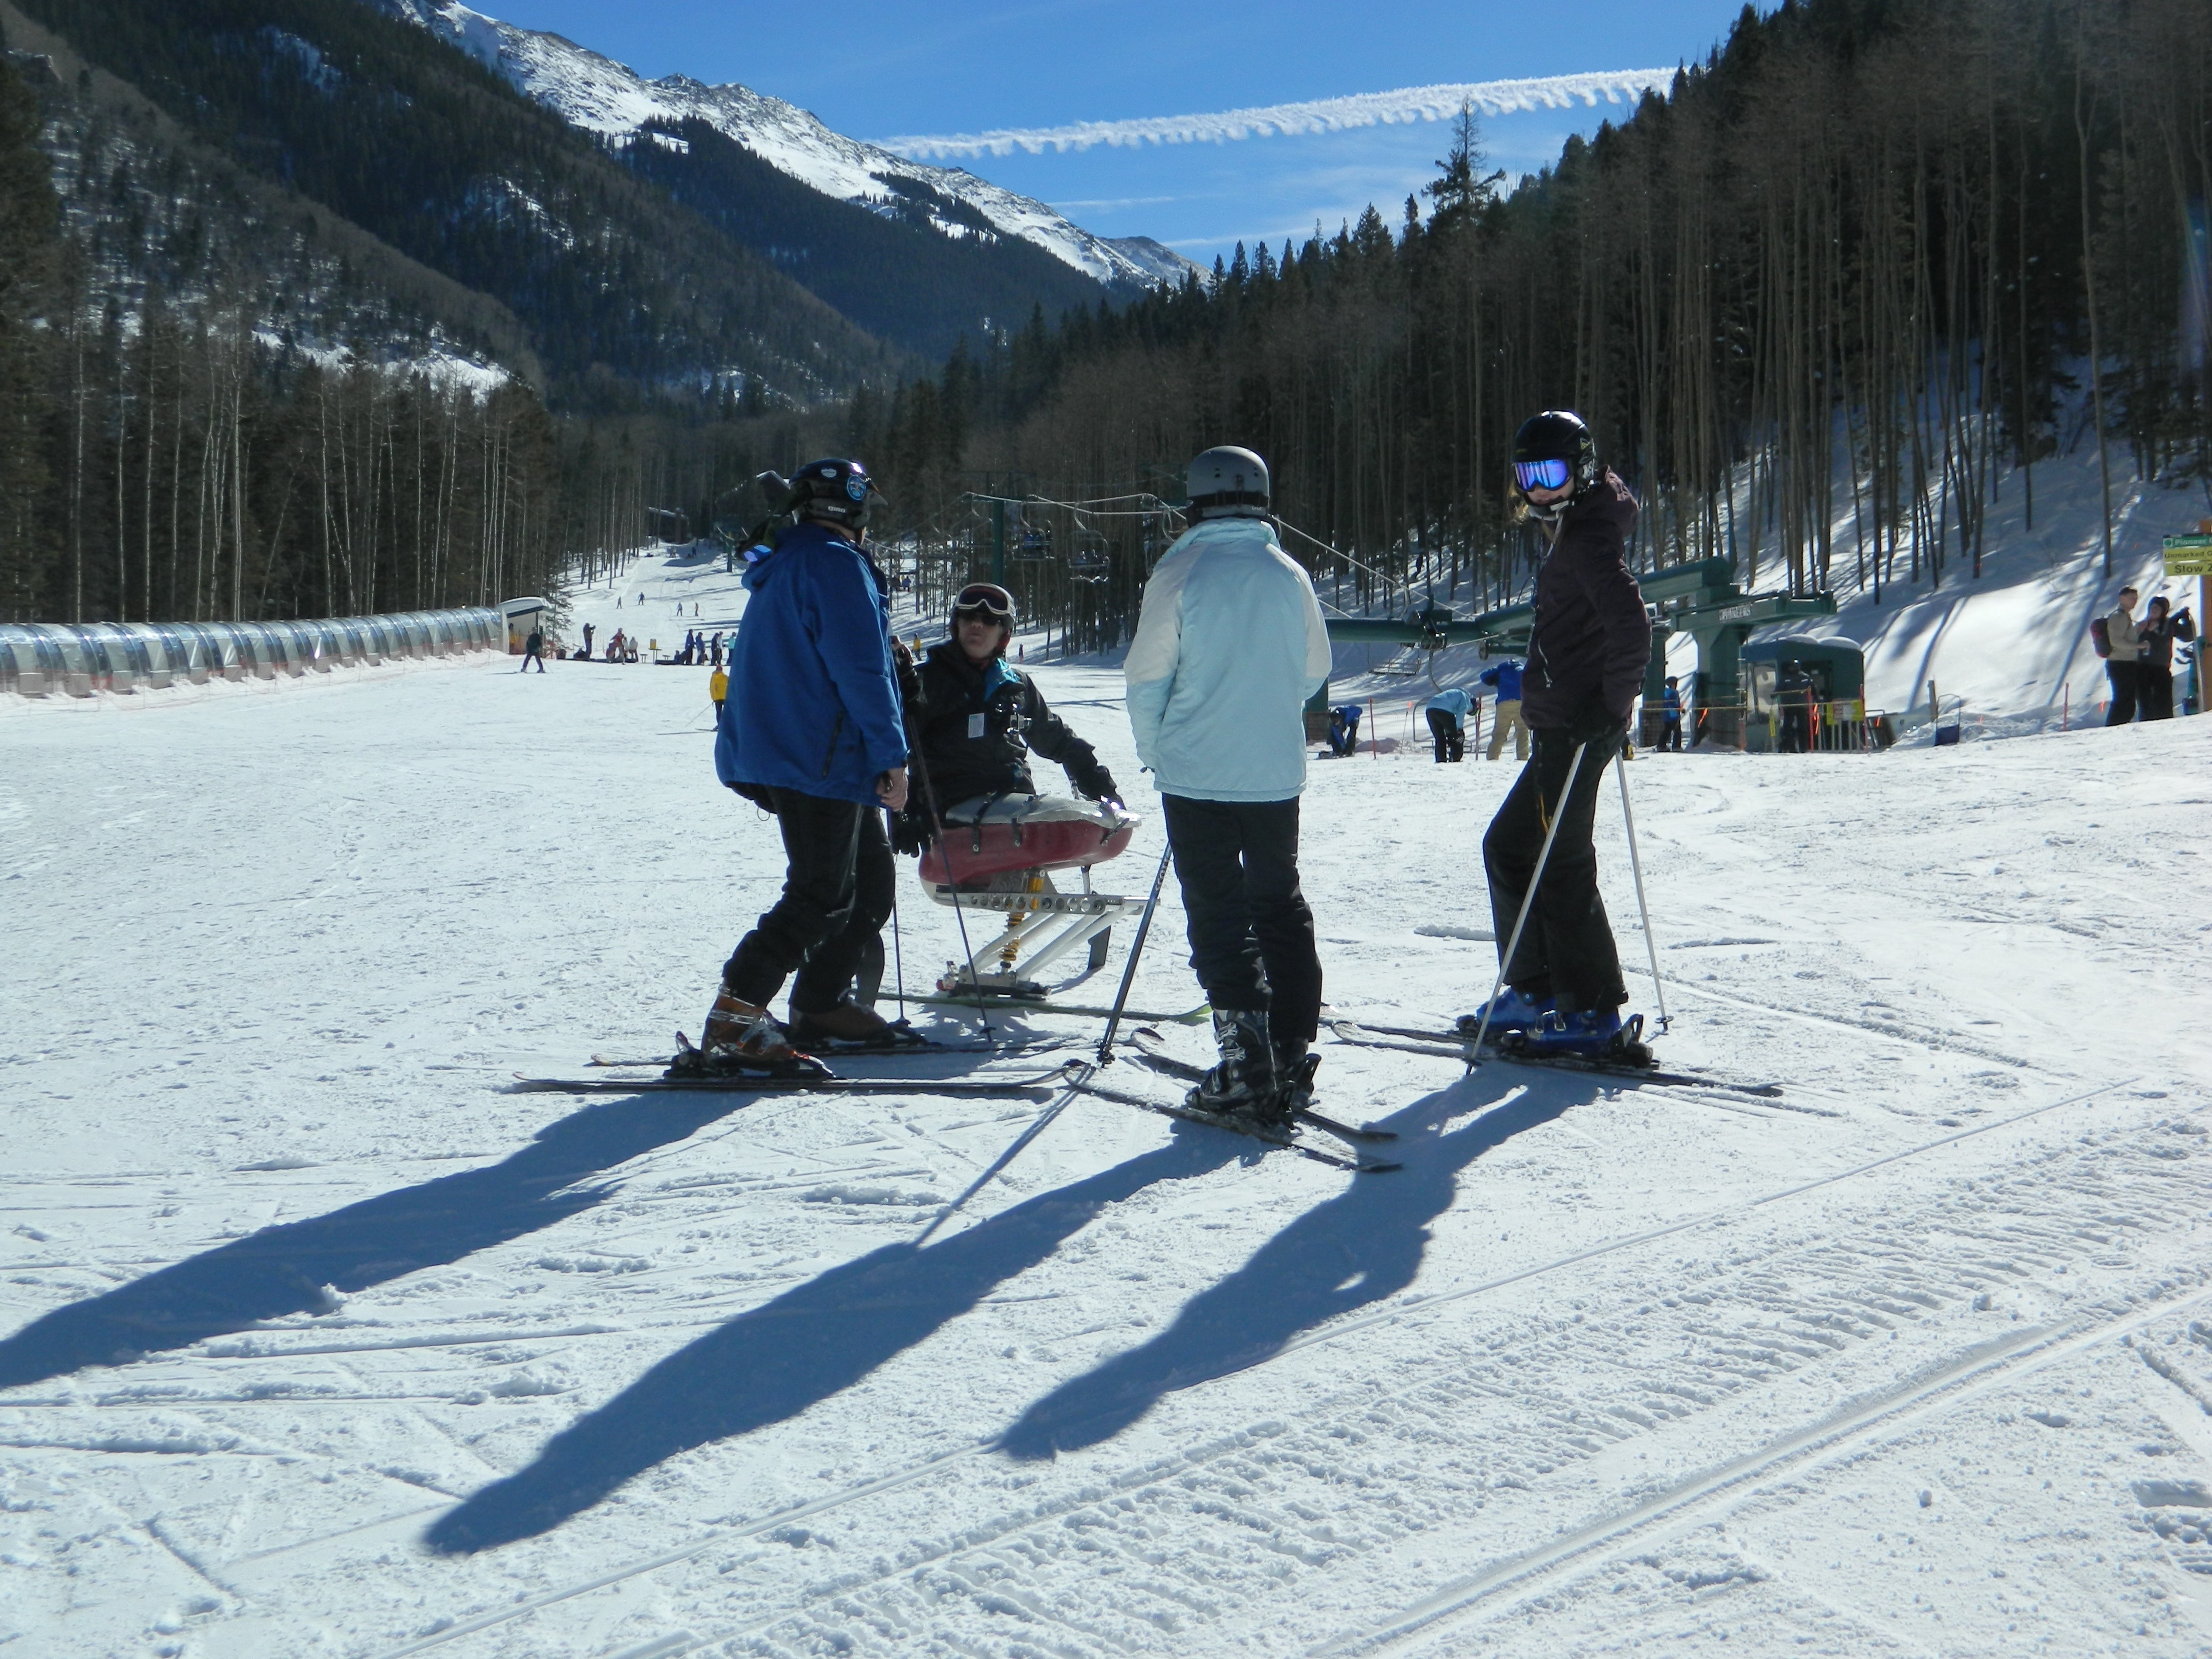 Four skiers, one disabled, confer at the base of Taos Ski Valley. Peaks, wintry forest, skiers, and lodge behind. Blue skies.